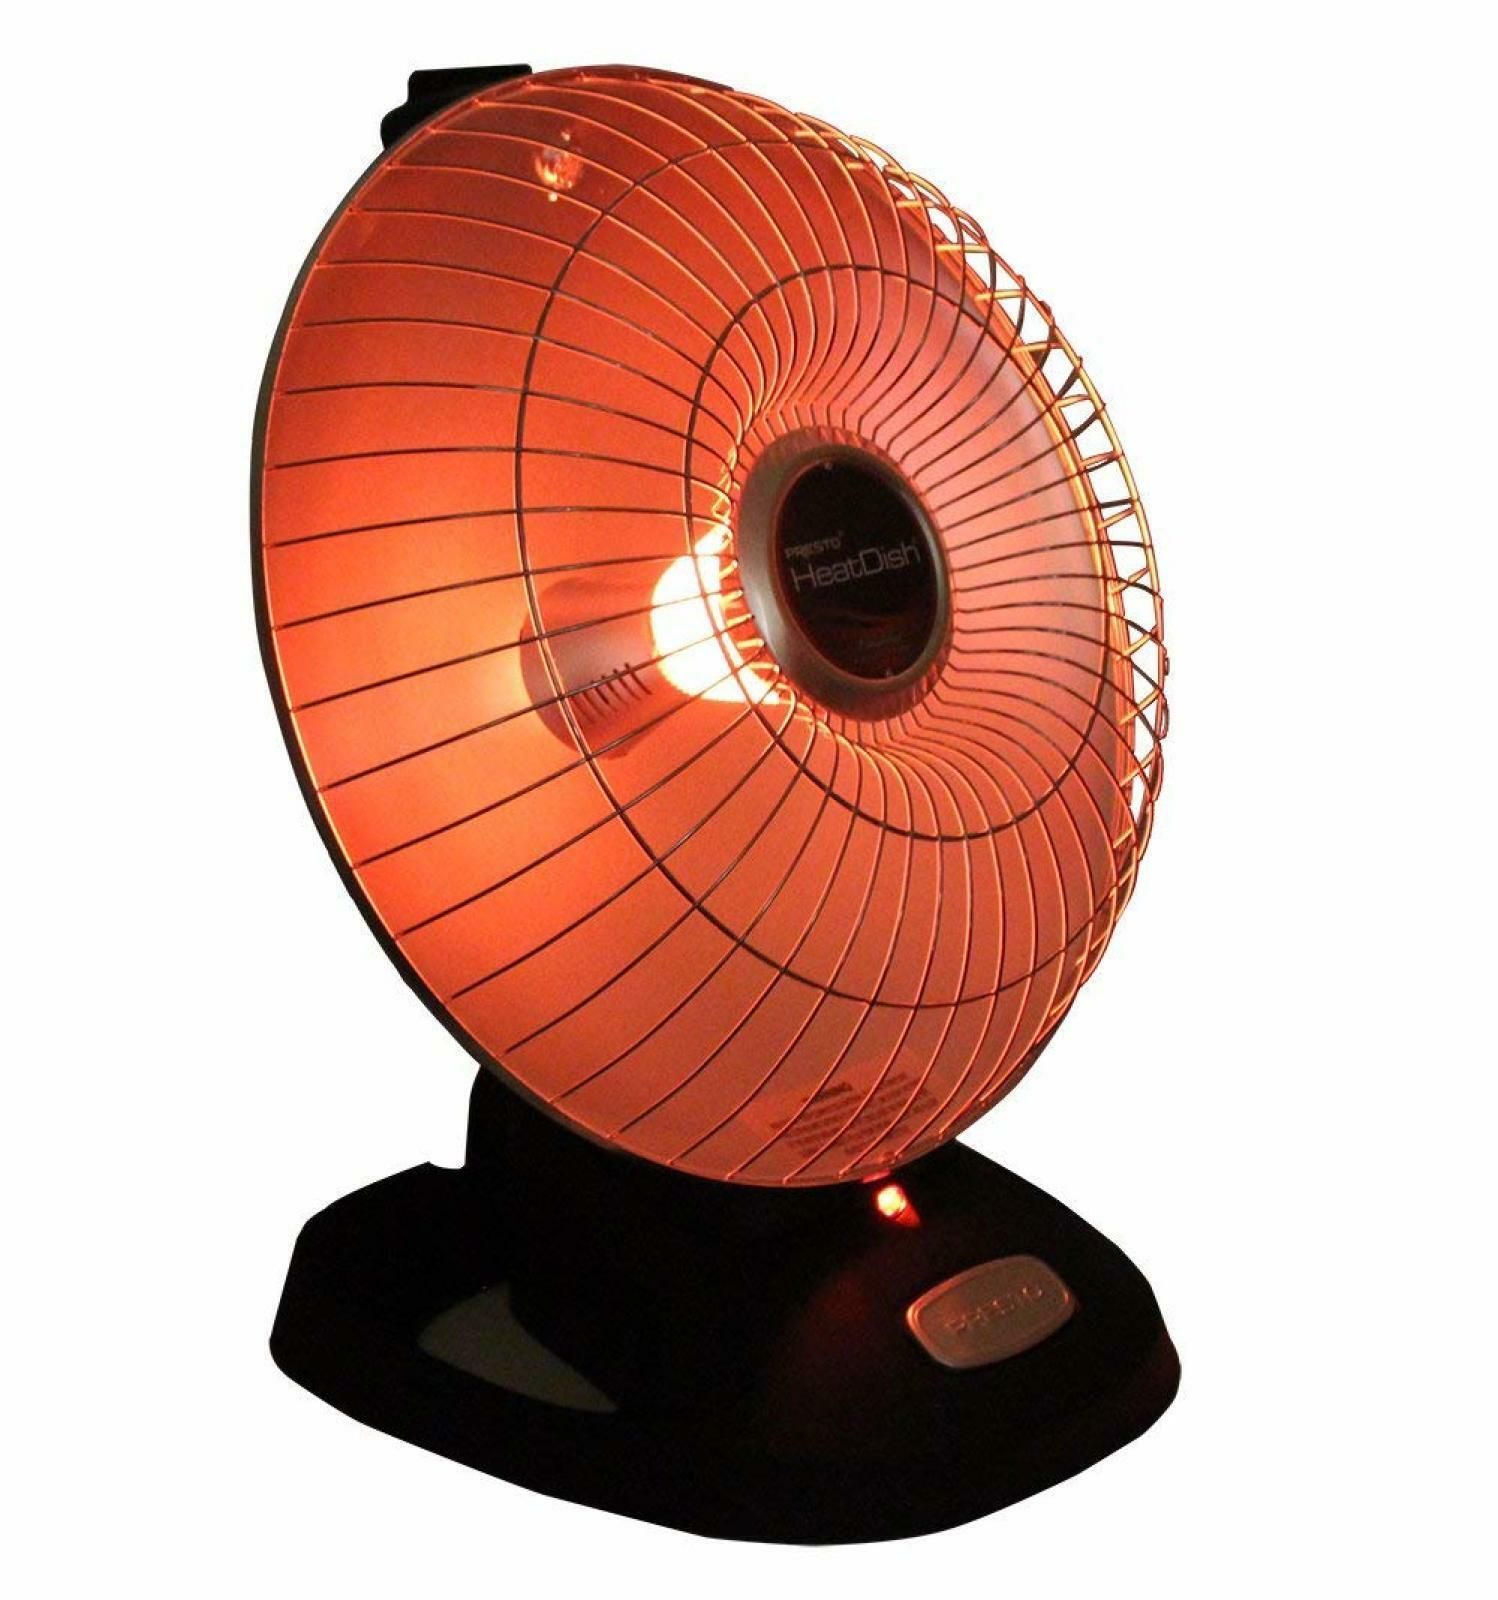 Electric Heaters for Home Presto Heating Dish Parabolic Spac